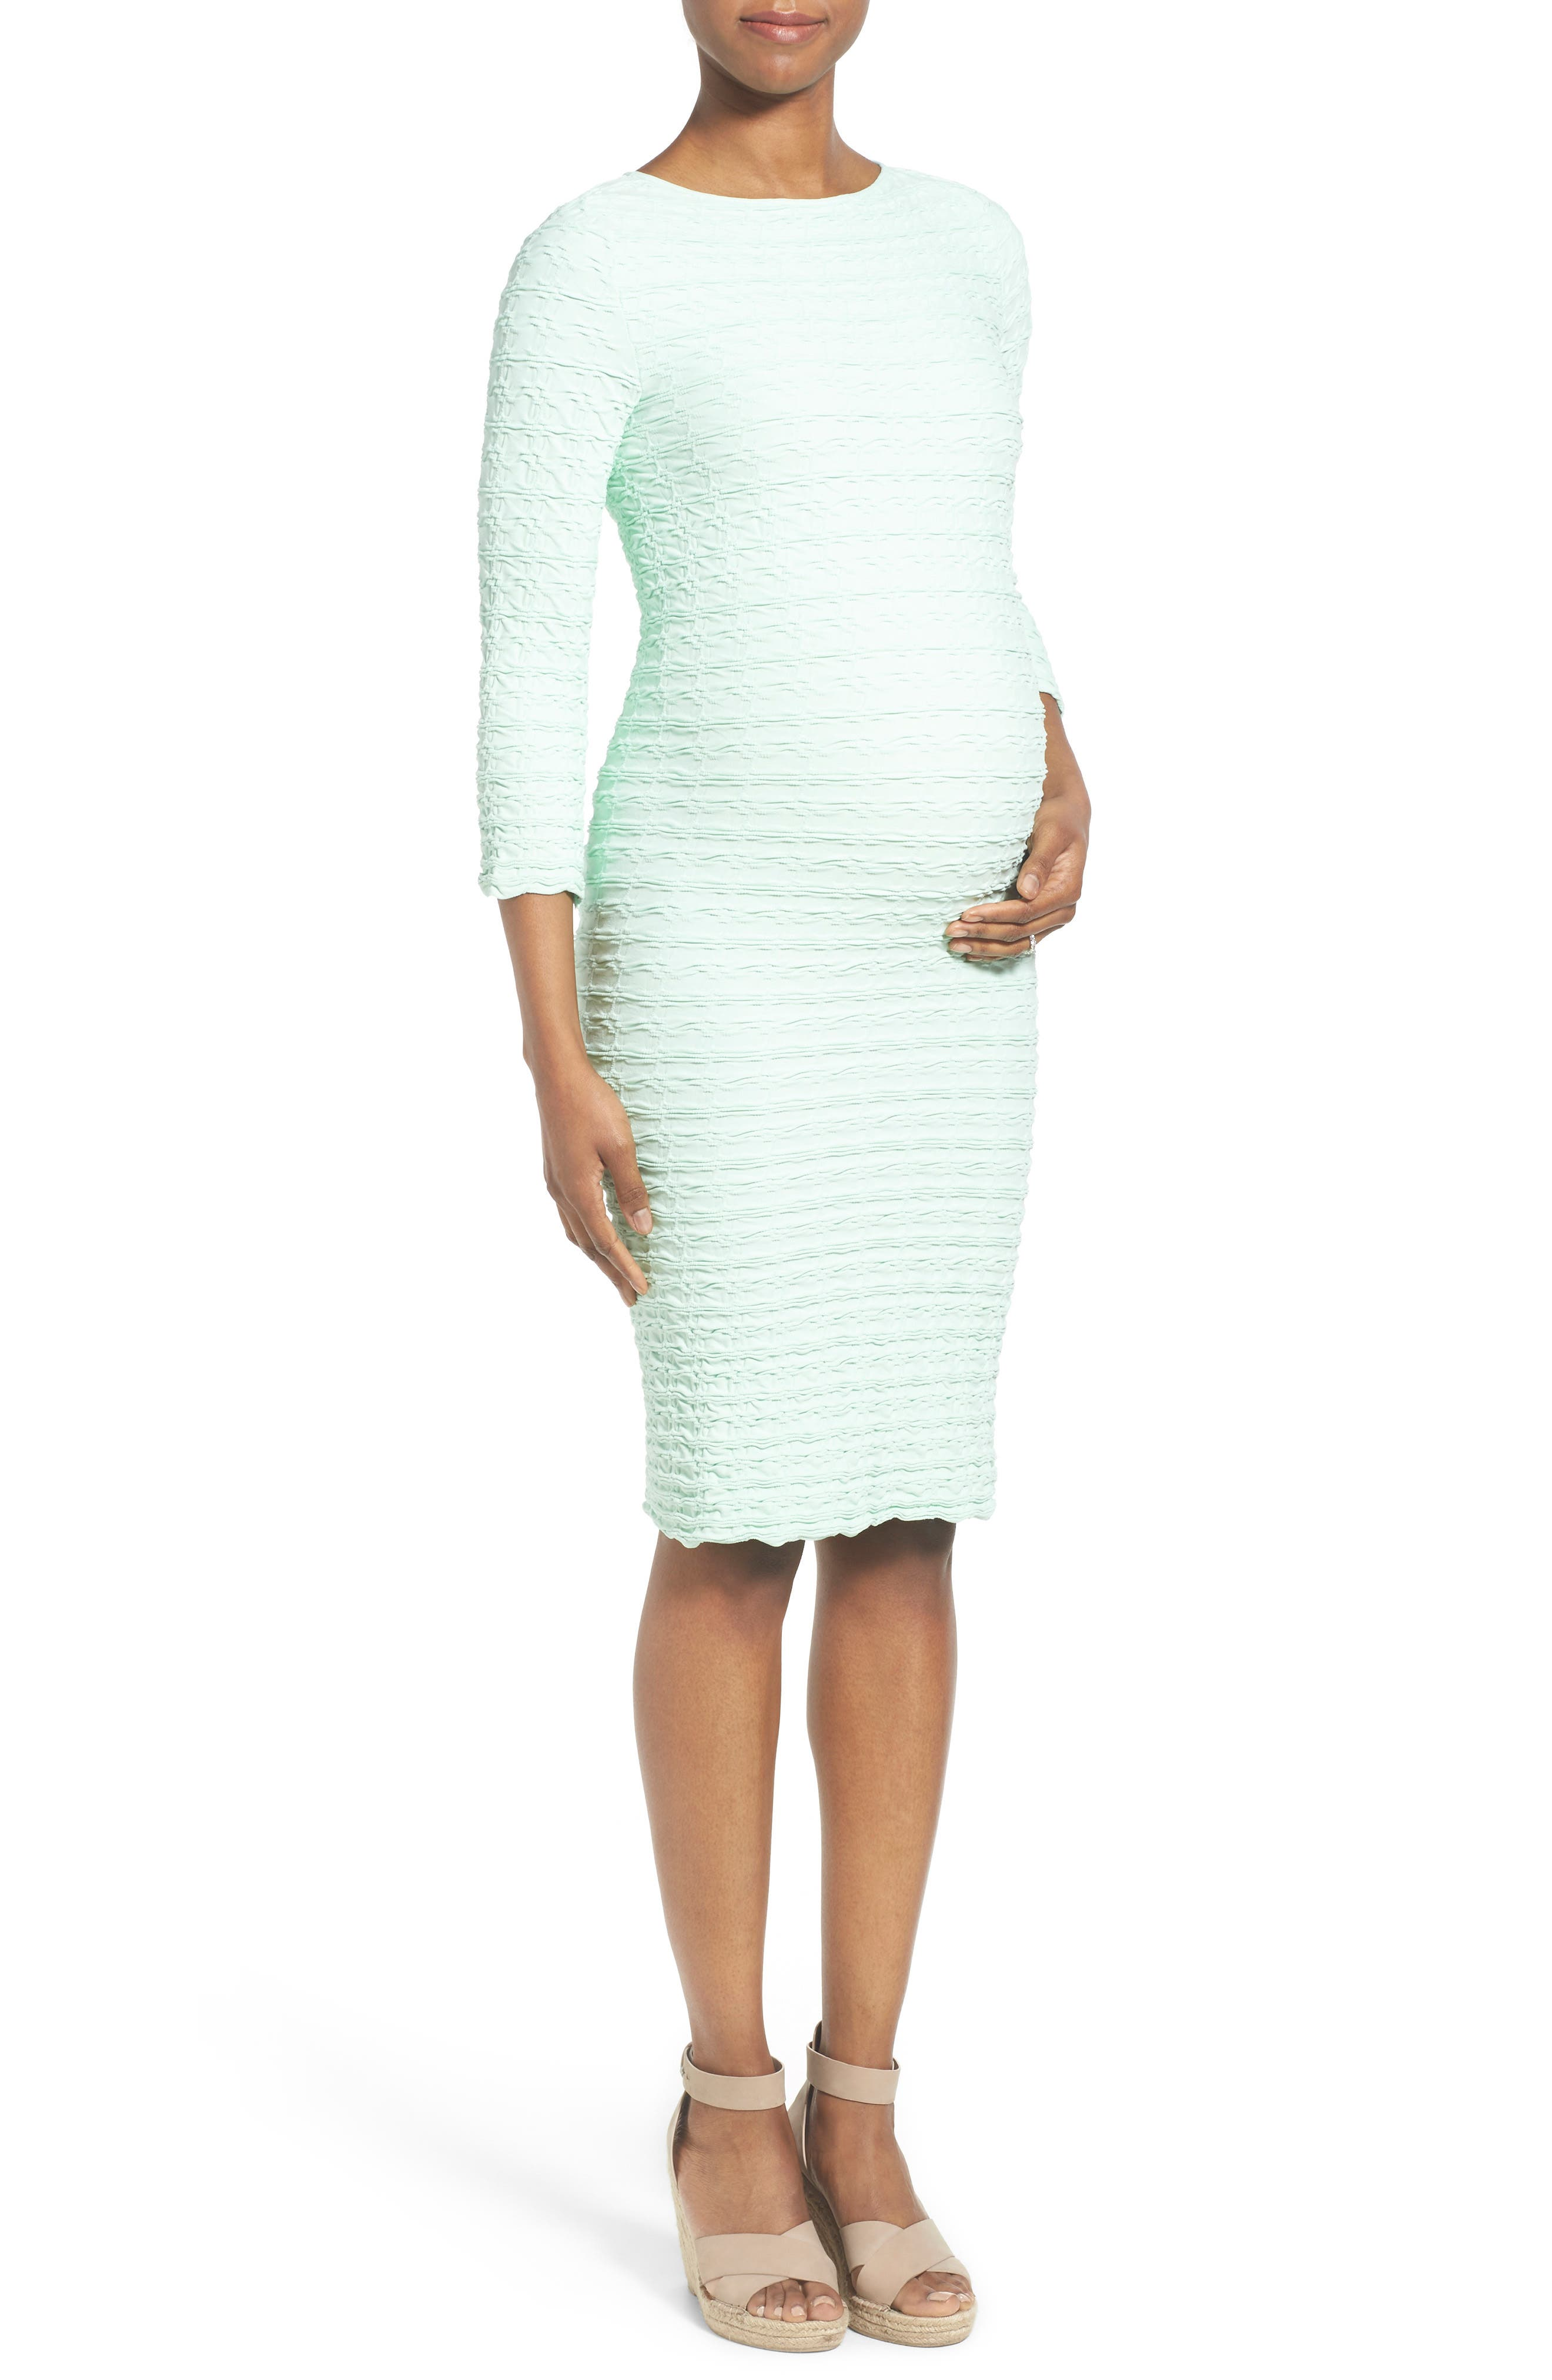 'Crinkle' Maternity Dress,                             Alternate thumbnail 6, color,                             115